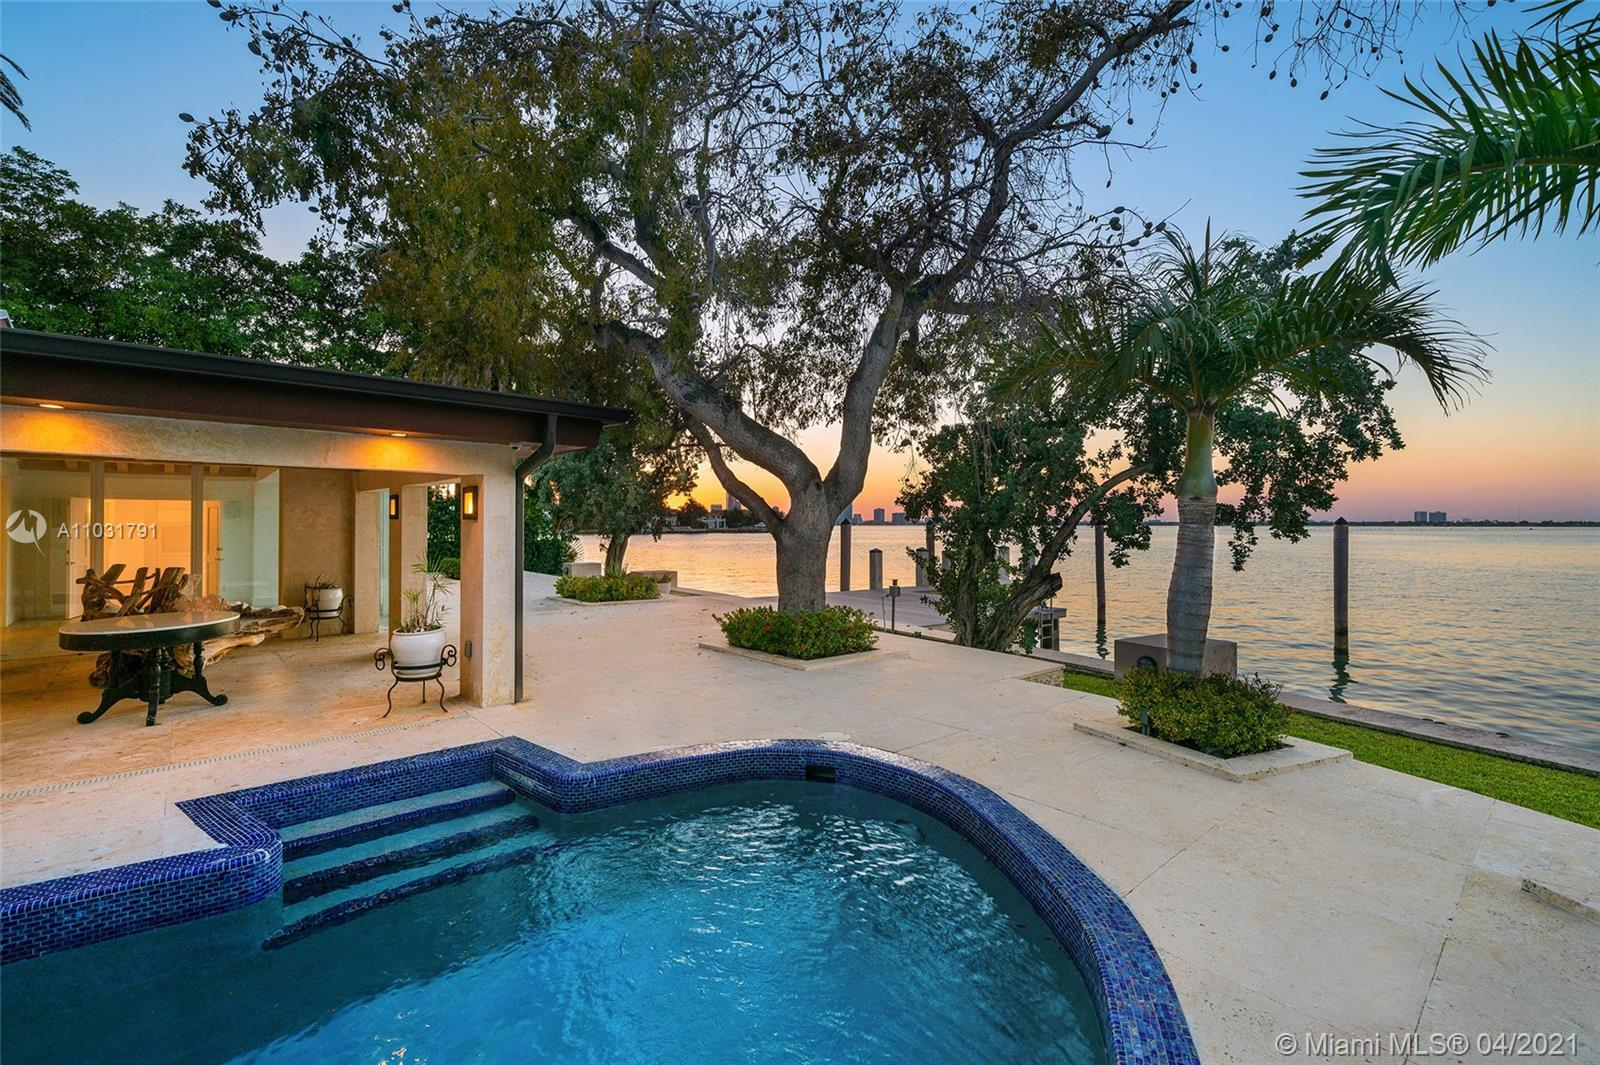 This Bayfront home is perfectly located on the coveted tip of the Venetian Islands. The 5BR/5BA home